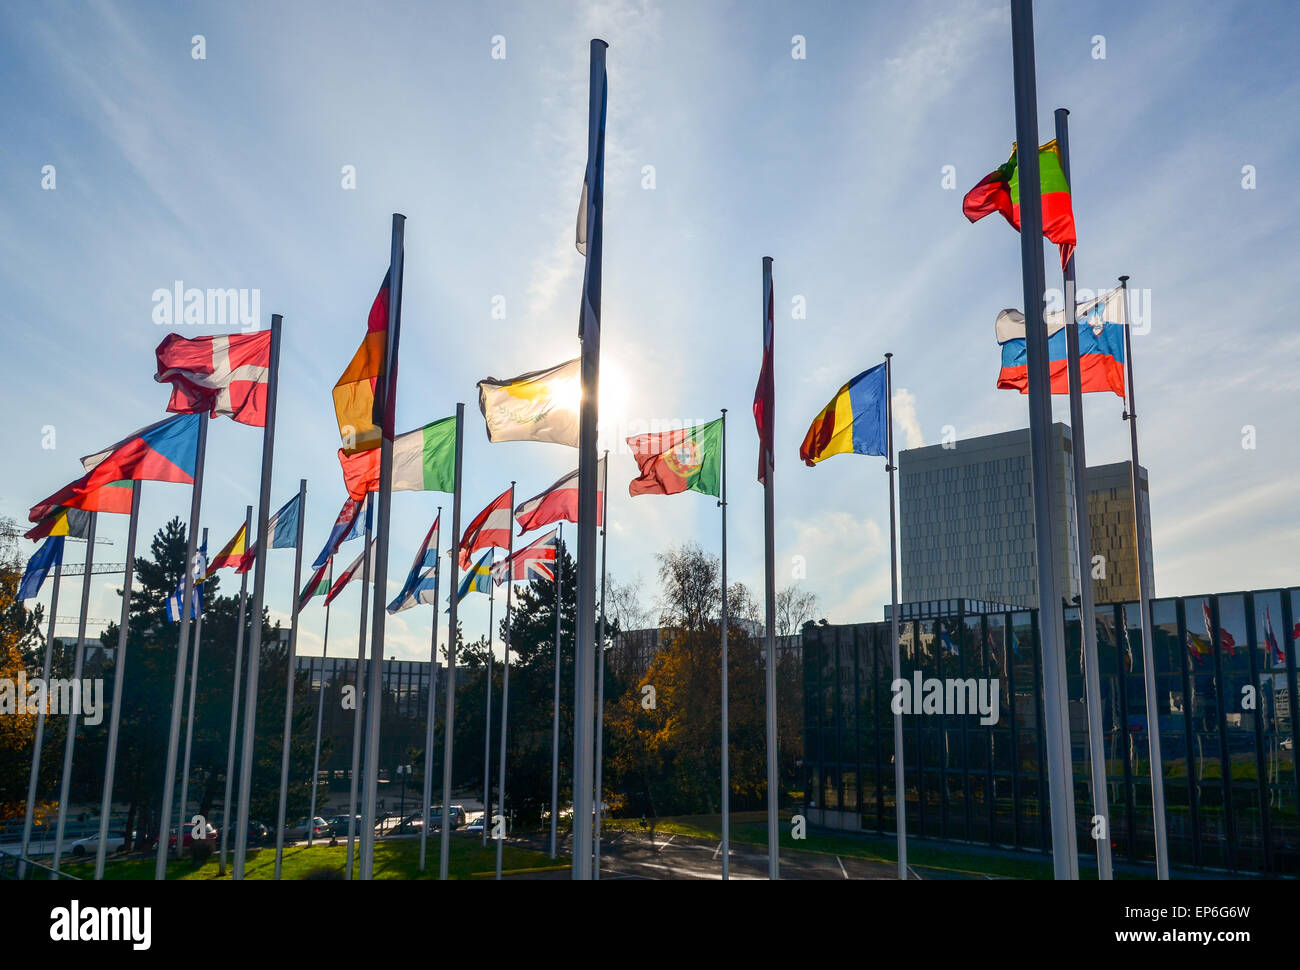 Flags of the European Union countries at the European Commission, European Quarter, Luxembourg Stock Photo